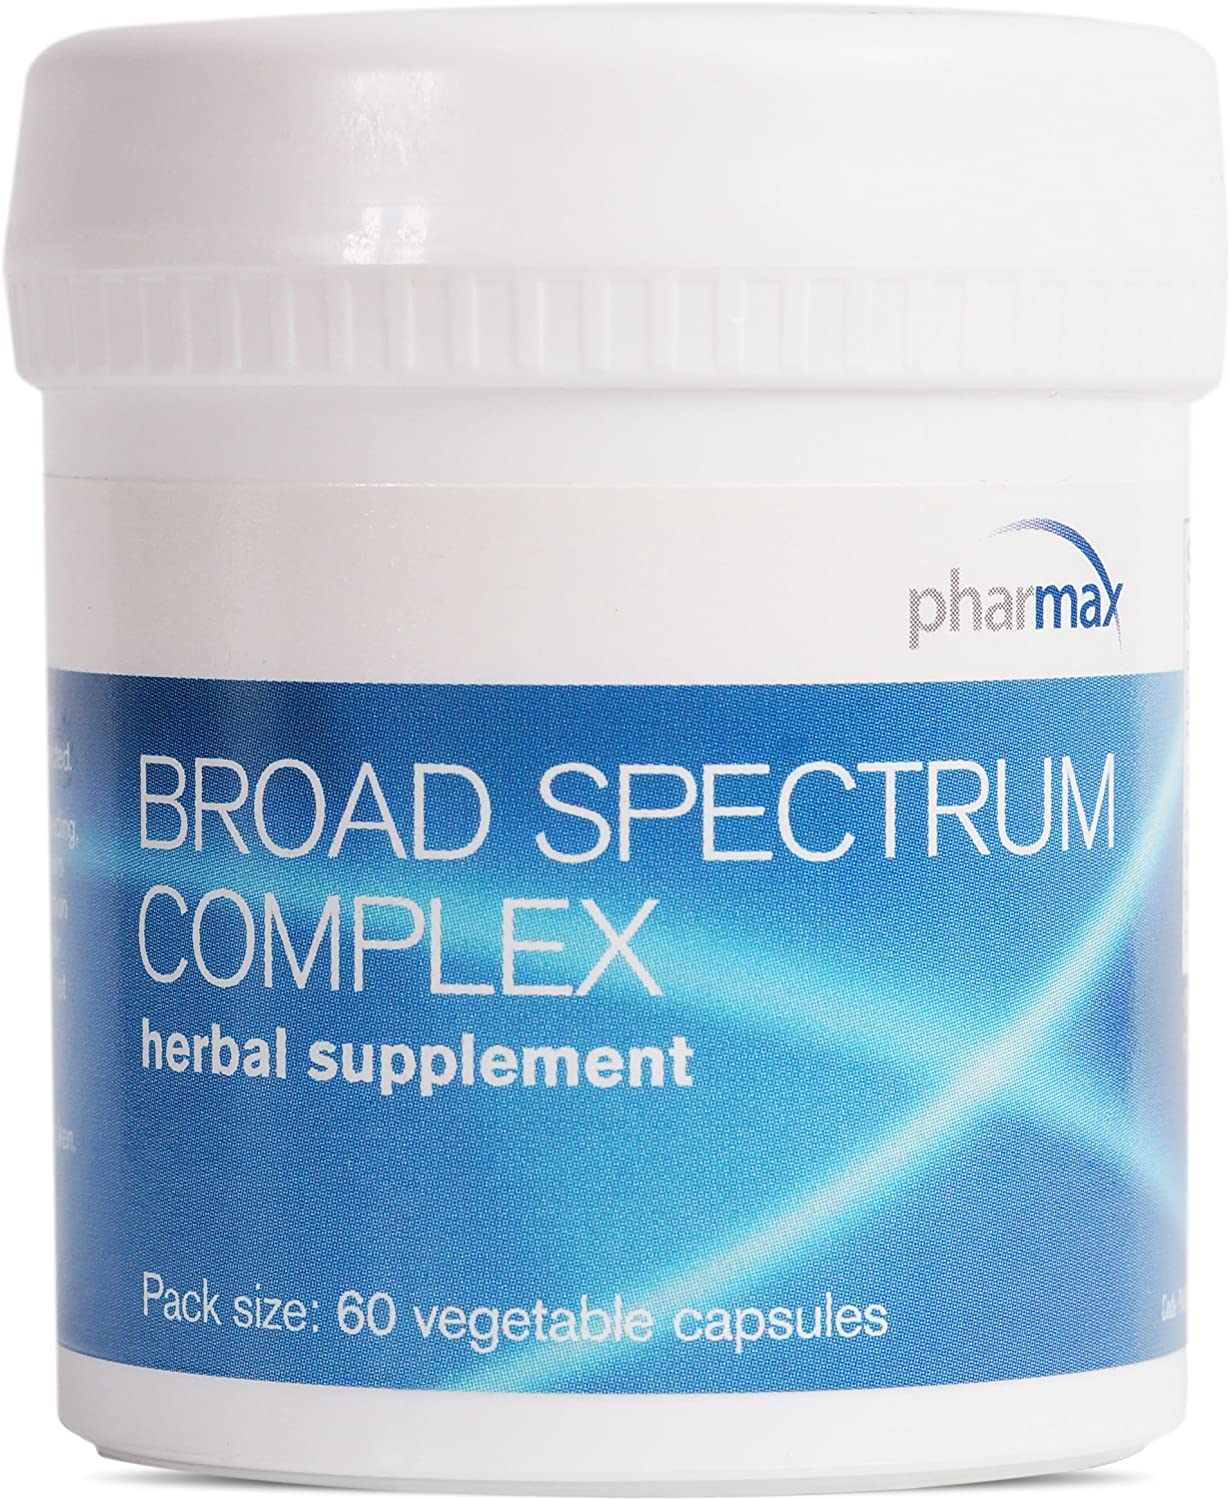 Pharmax – Broad Spectrum Complex – Botanical Formula to Support Gastrointestinal Health and Digestive Function* – 60 Capsules